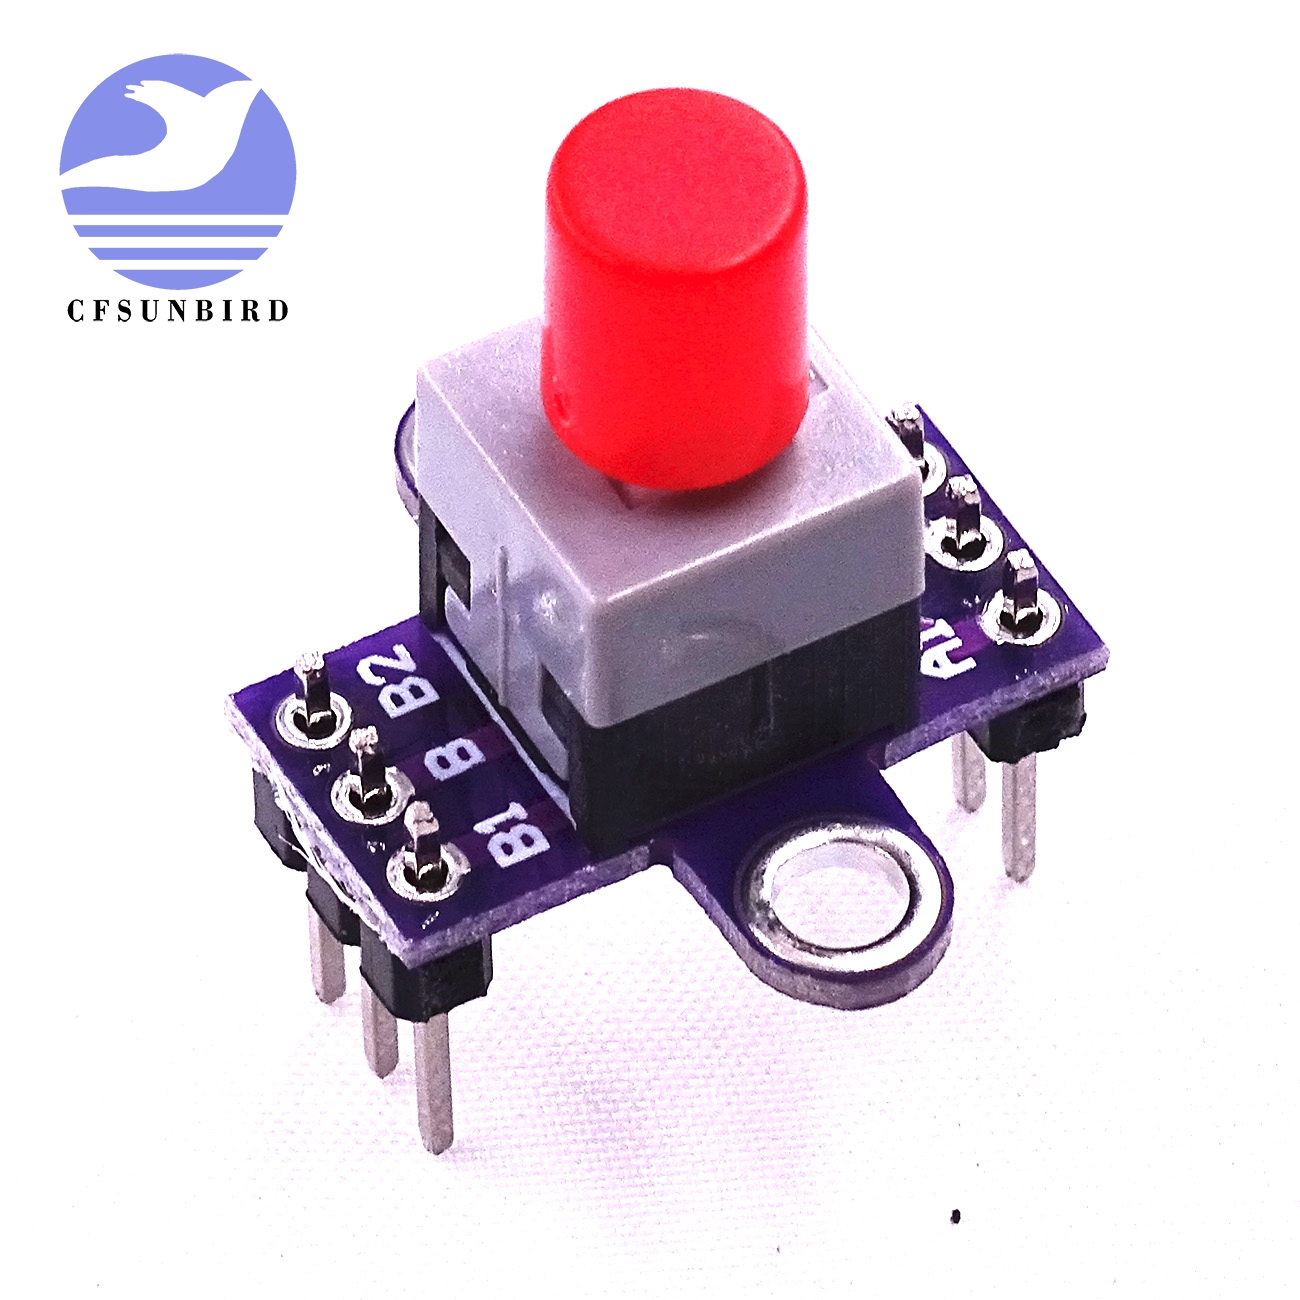 Double Switch With Lock Switch Diy Kit Skill Training Mini Version Active Components Clever 10pcs/lot Self Locking Switch With Lock Key